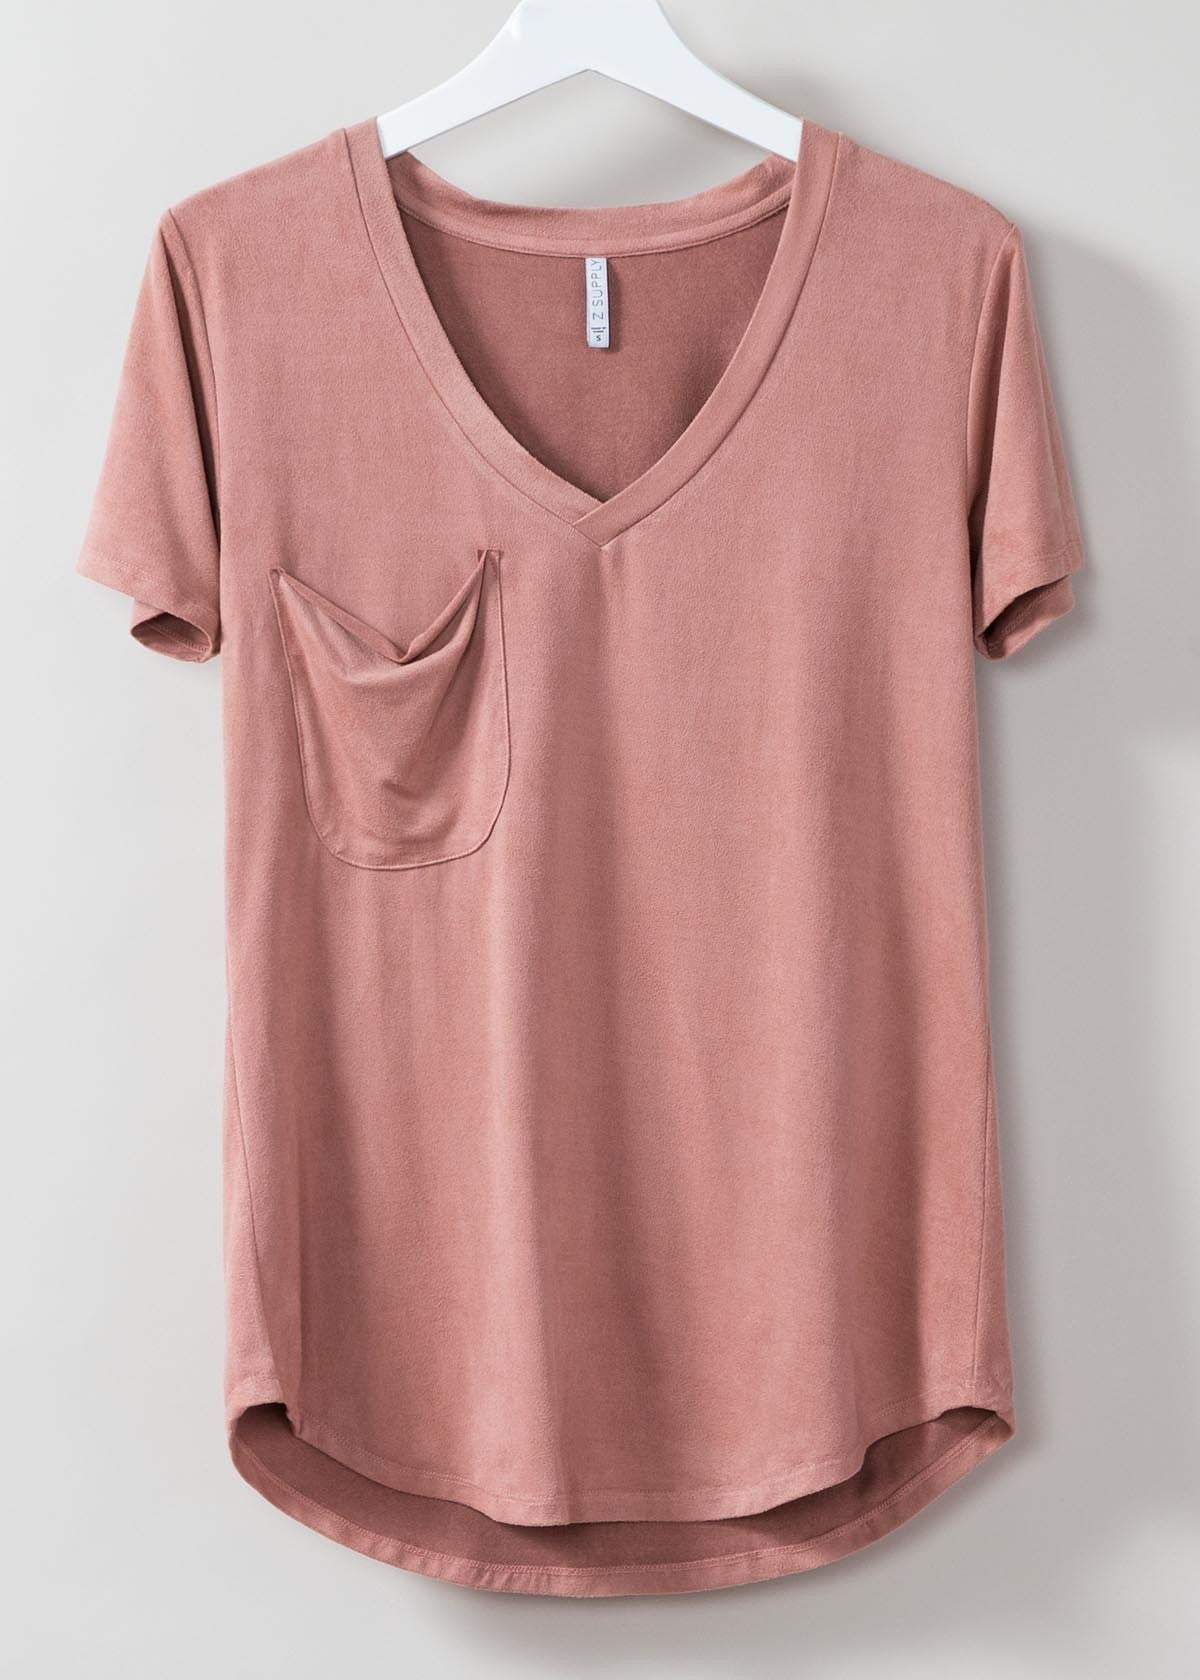 The Suede Pocket Tee - Blossom Rose